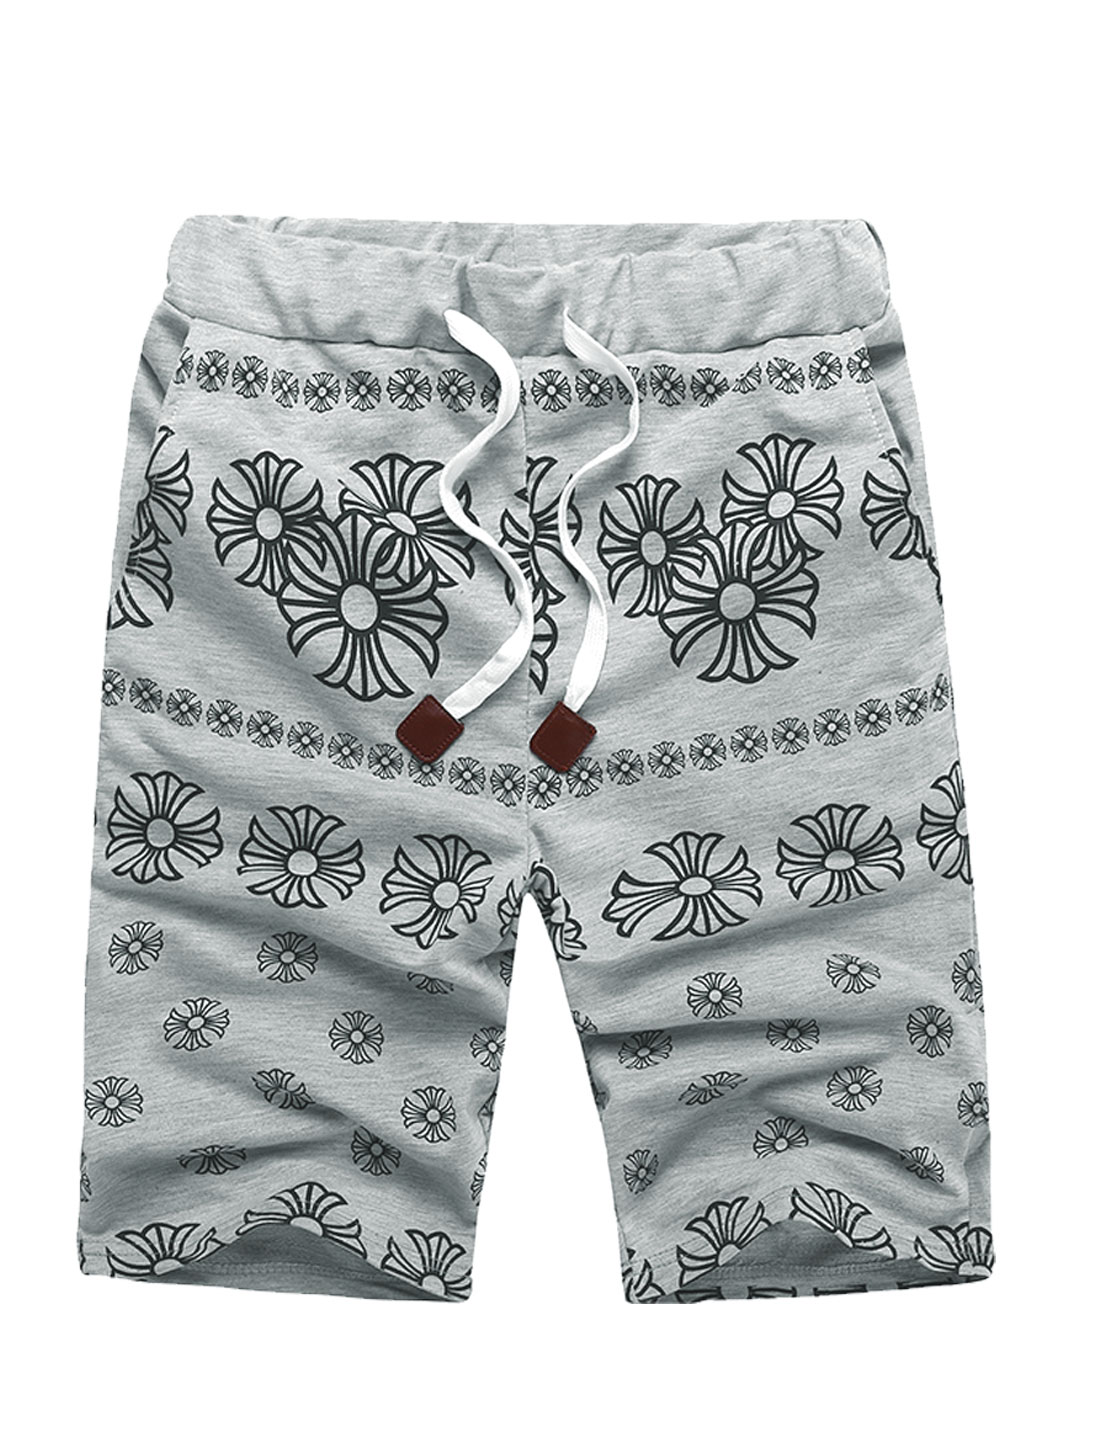 Men Elastic Waist Floral Printing Simple Shorts Light Gray W32